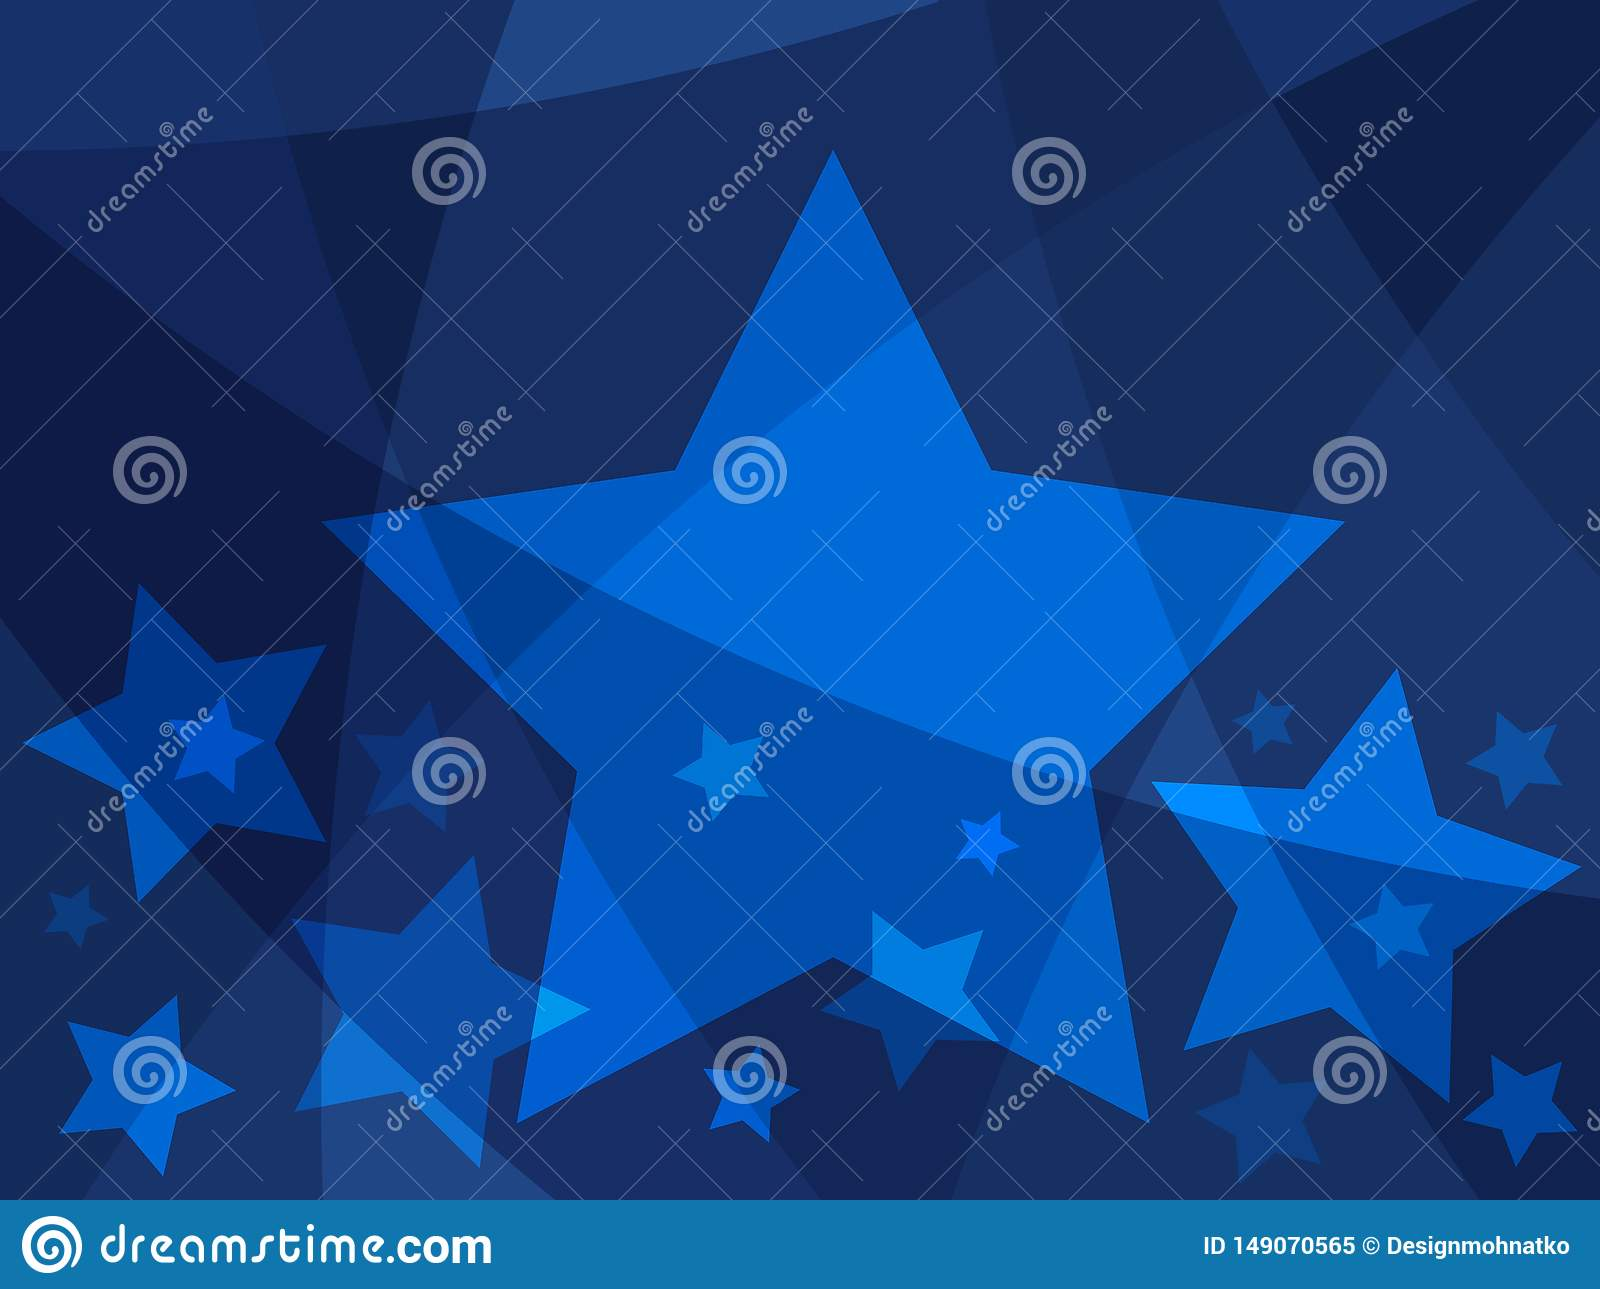 Star abstract design with blue stars on a modern creative background